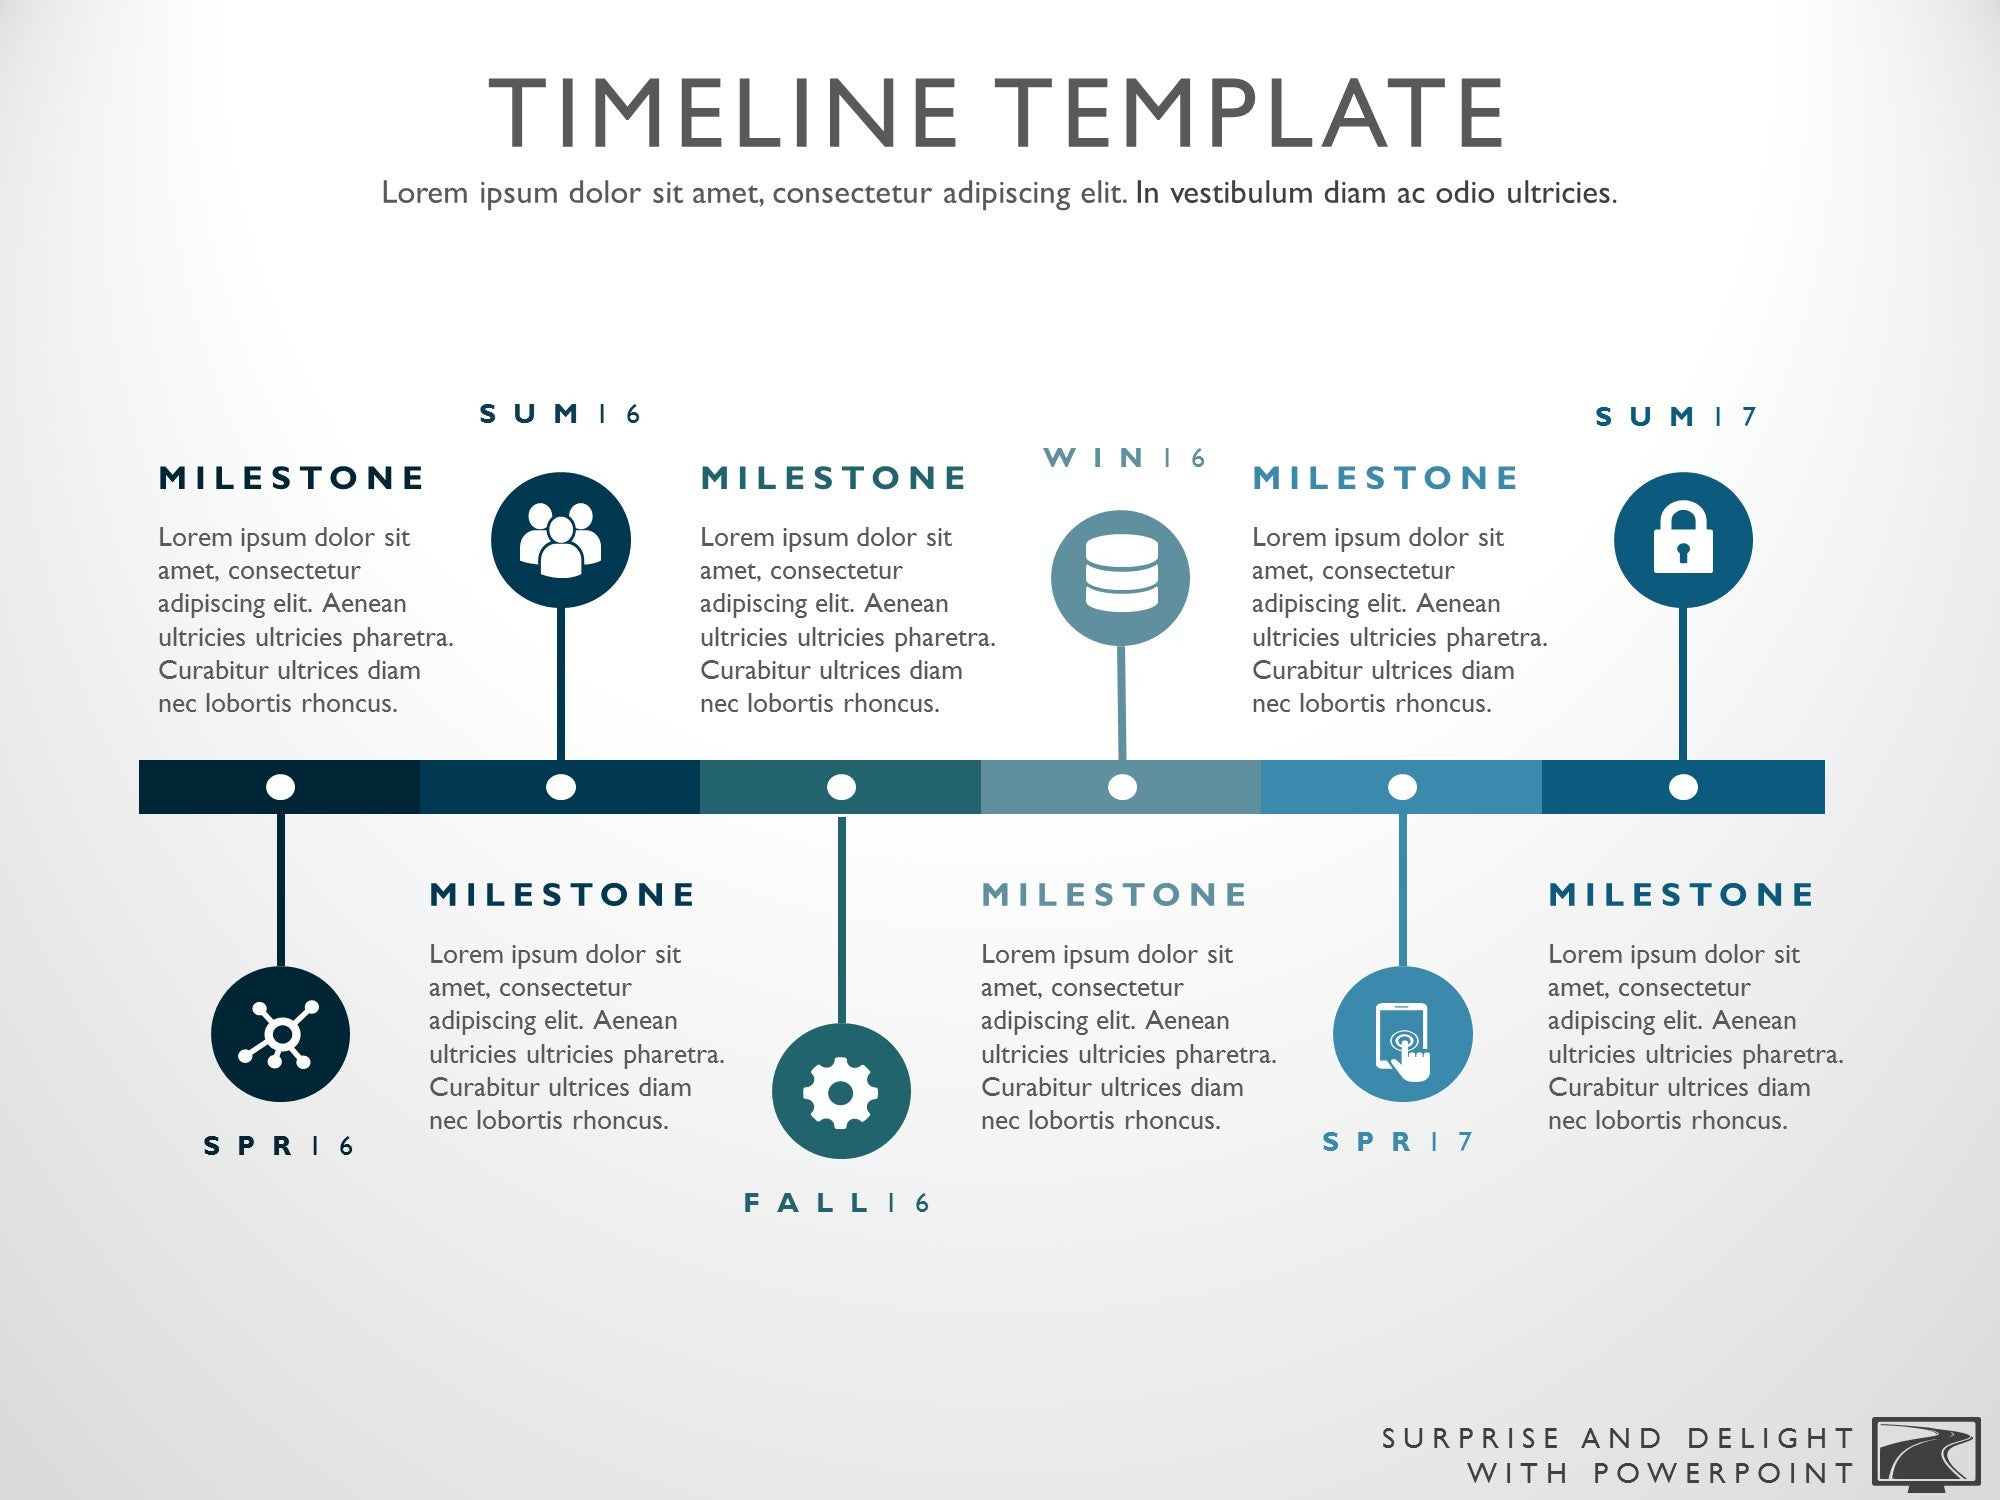 Six Phase Project Timeline Graphic My Product Roadmap - Project timeline template